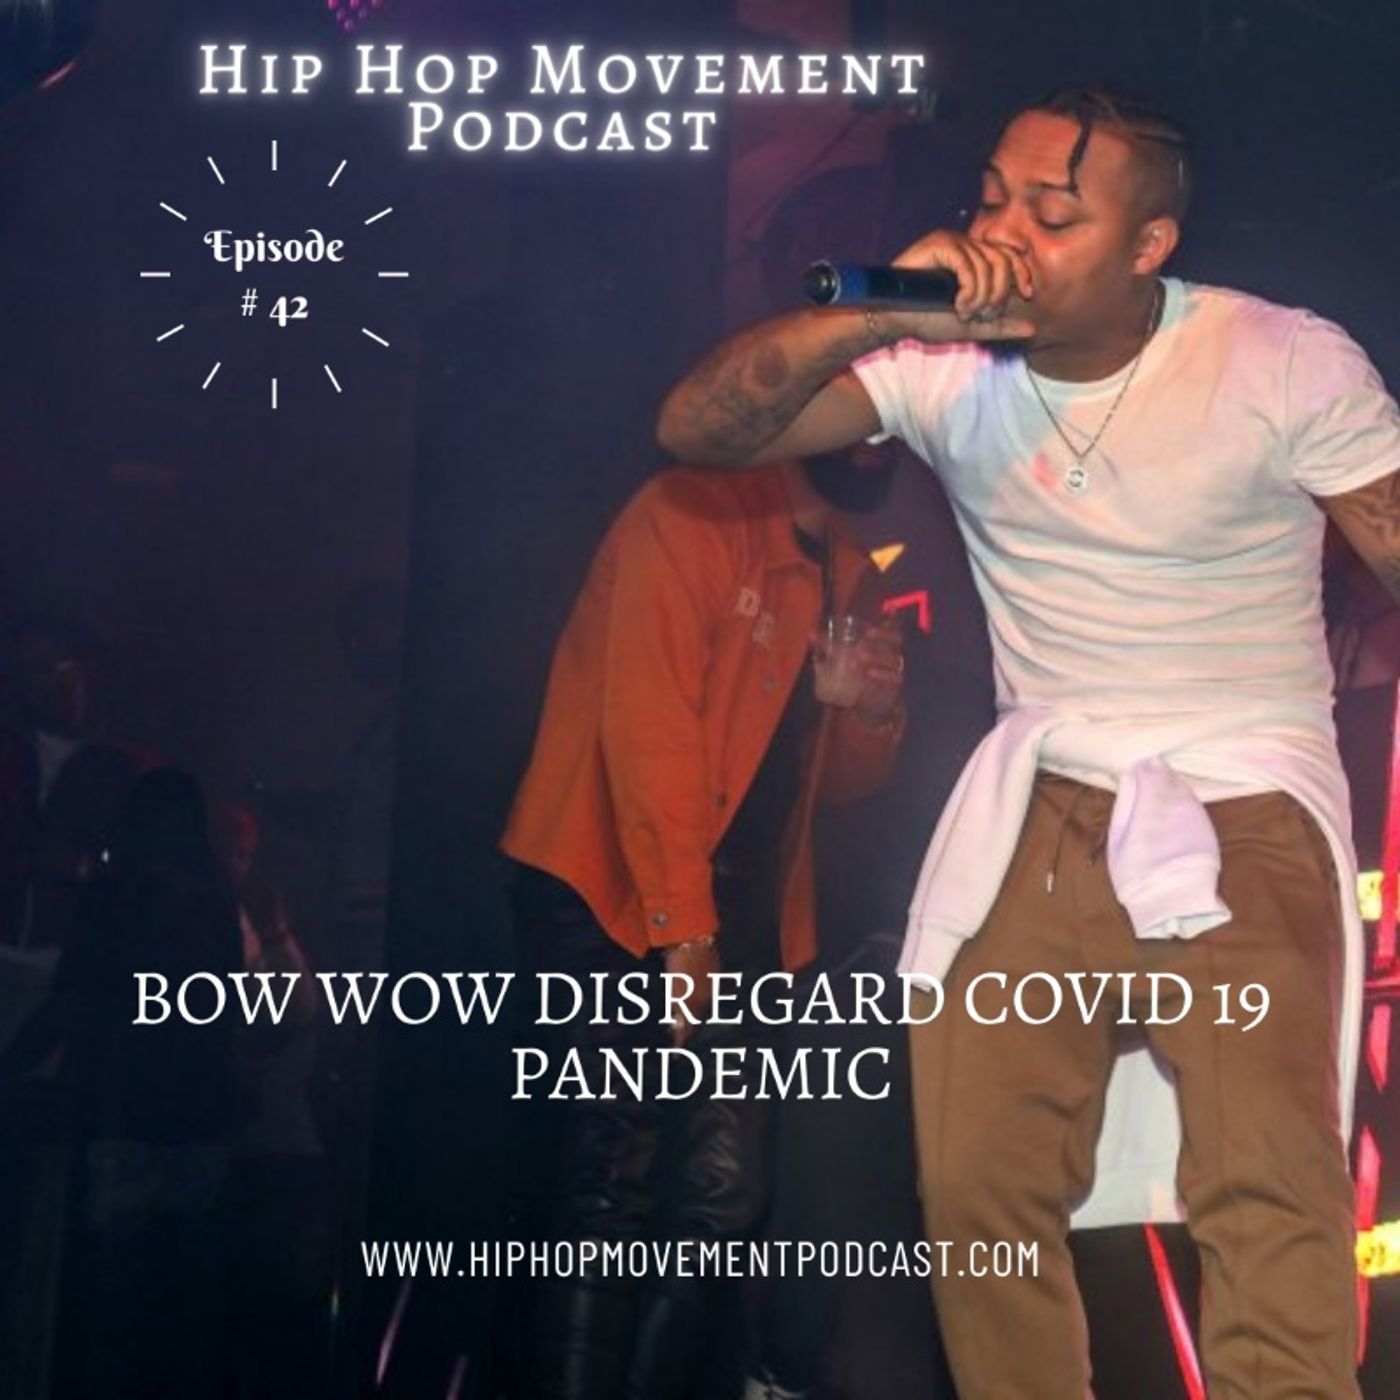 Episode 42 - Bow Wow Slammed For Performing At Packed Nightclub